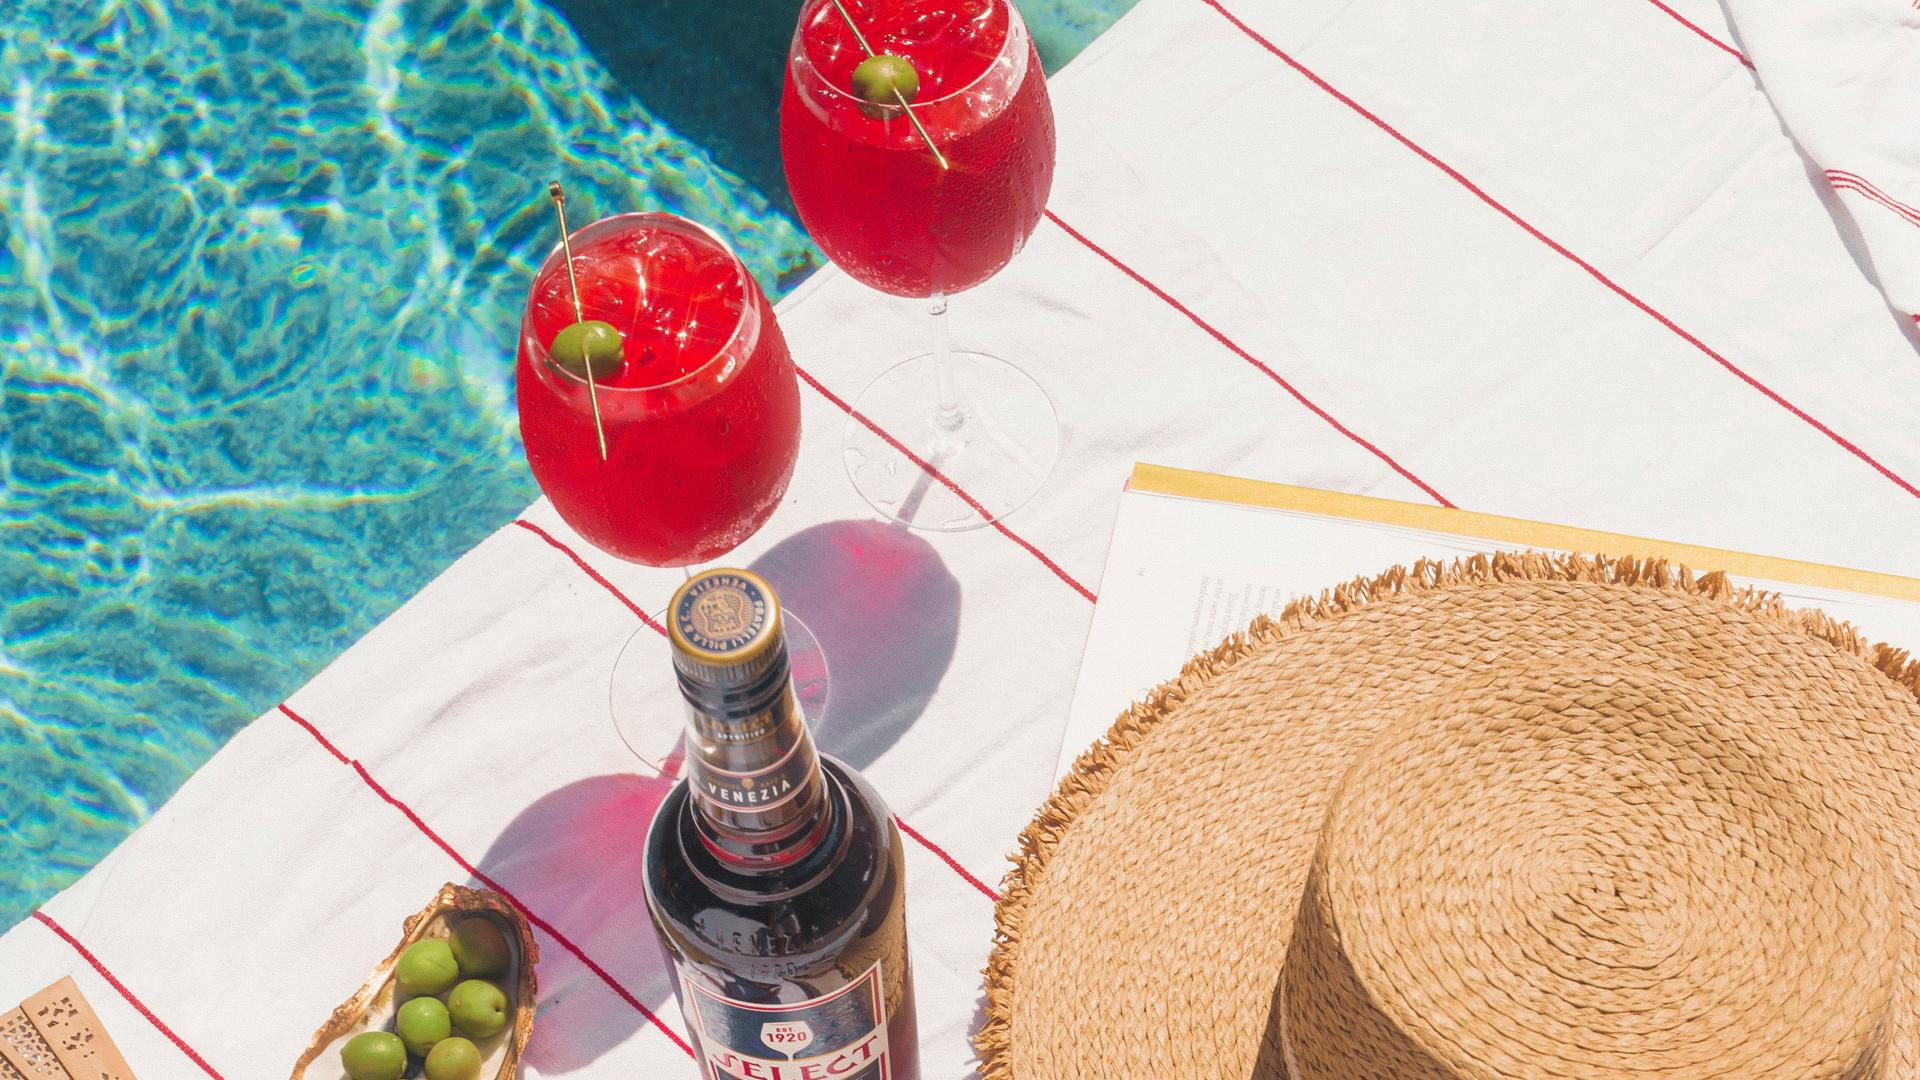 Picnic recipes   Two select spritzes by the pool